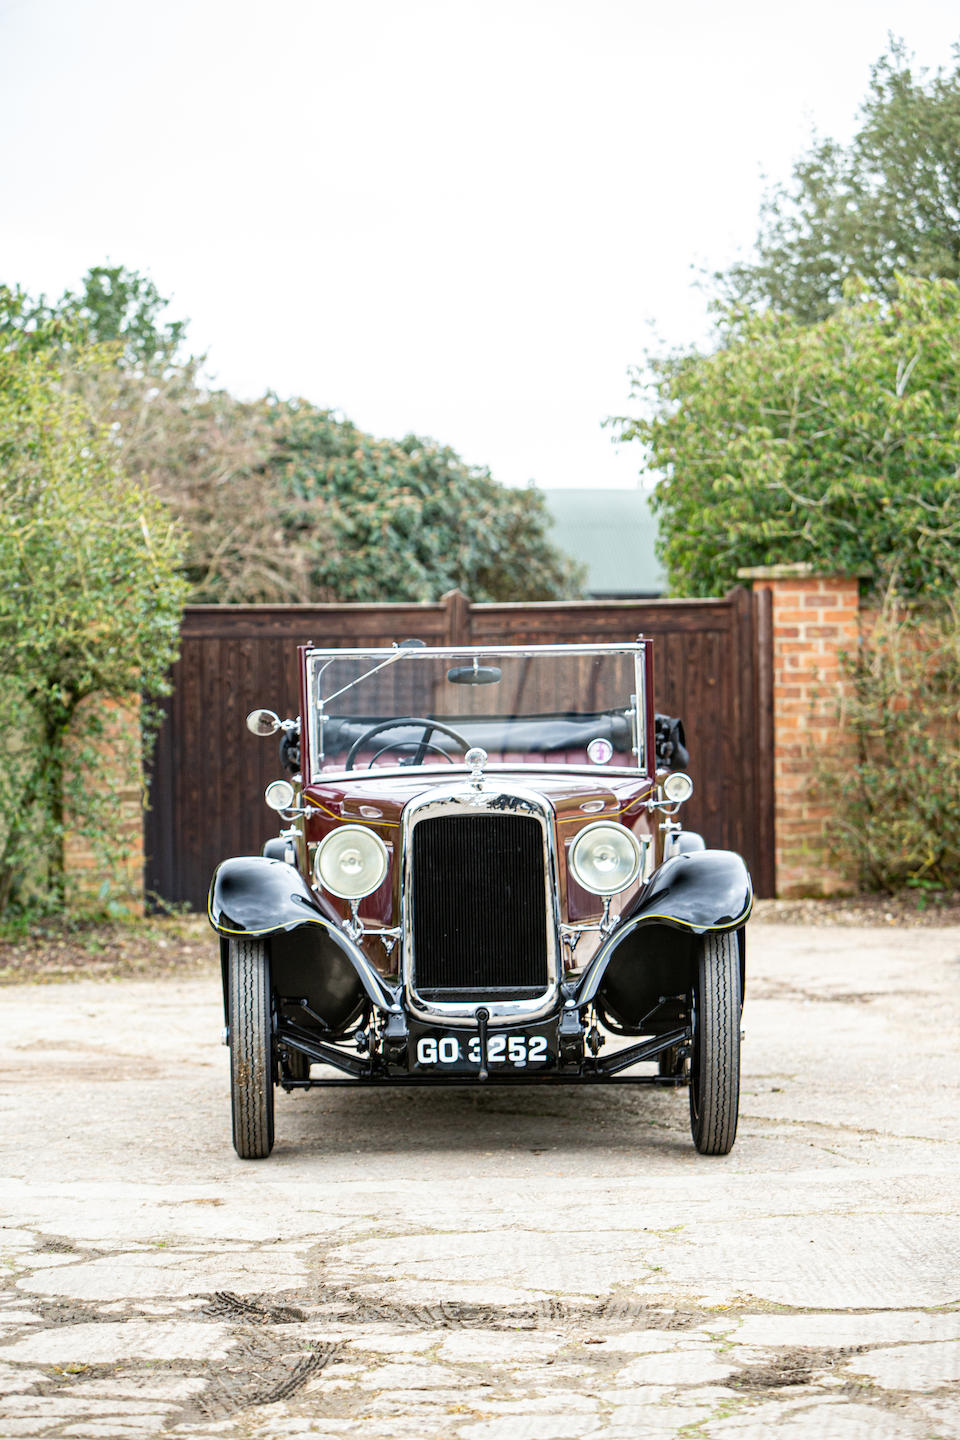 The property of Richard Stewart Williams 'Old Min', the ex-Peter Sellers/Spike Milligan,1930 Austin Heavy Twelve Open Road Tourer Deluxe  Chassis no. 68282